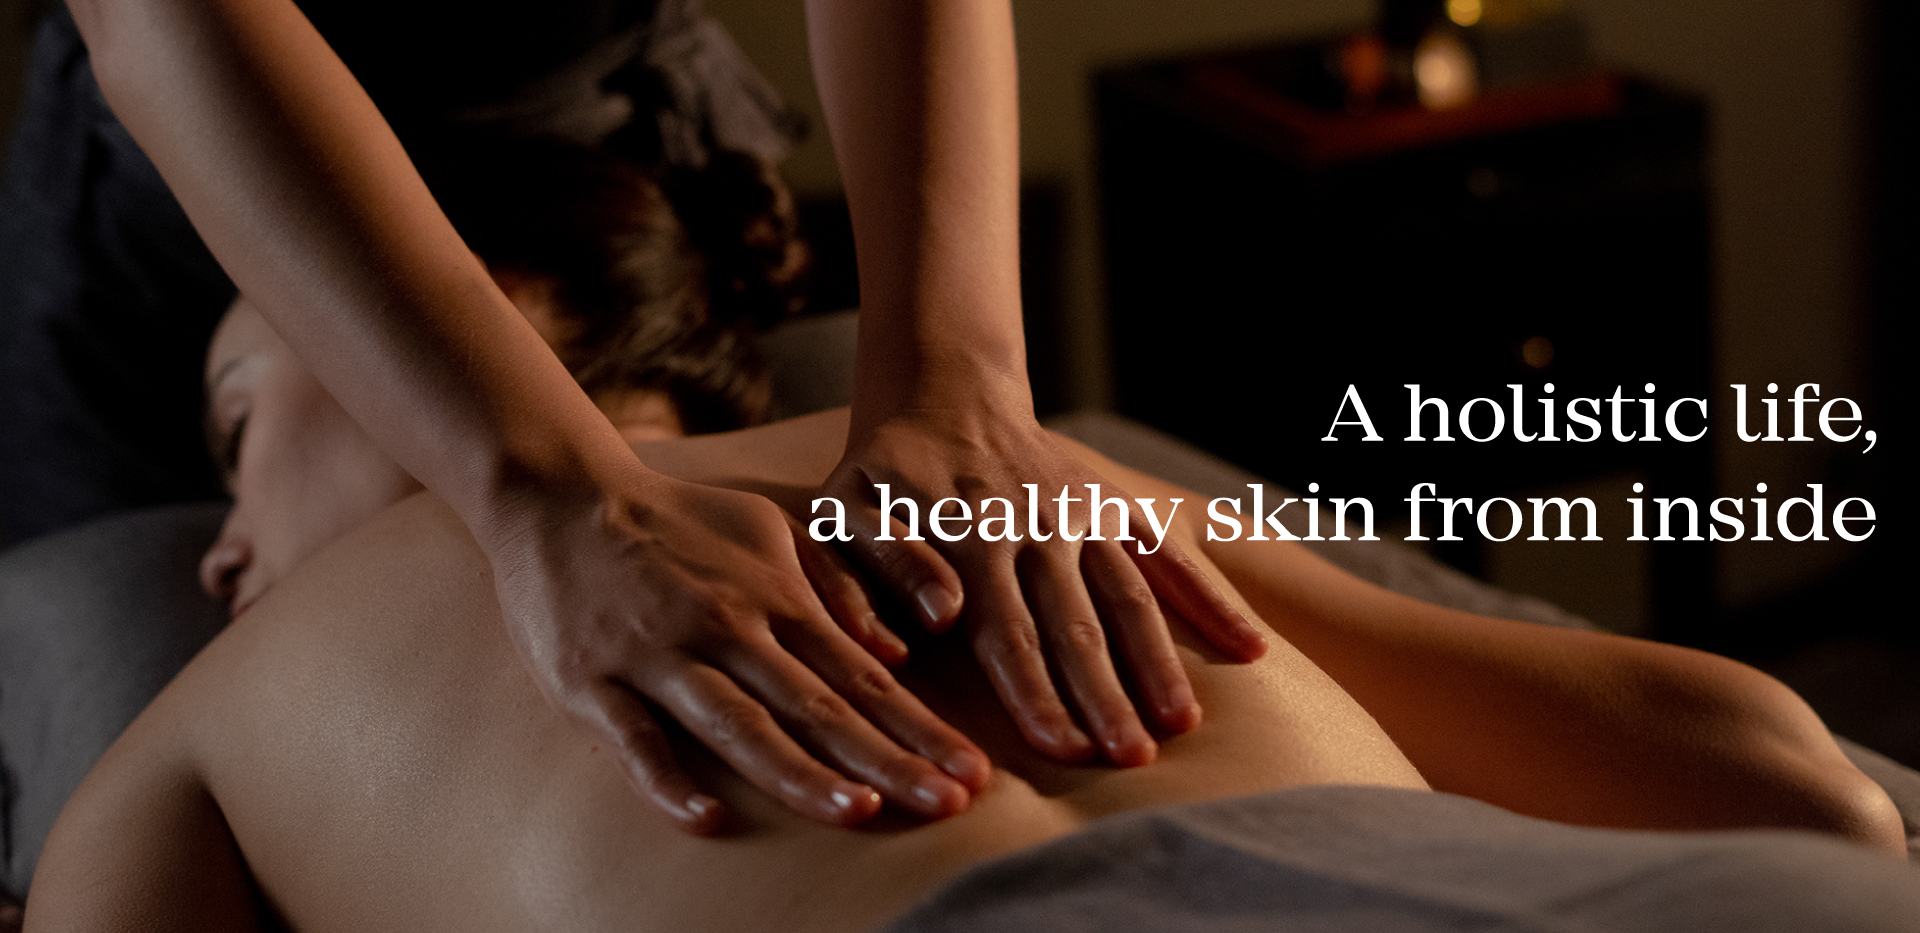 A holistic life, a healthy skin from inside